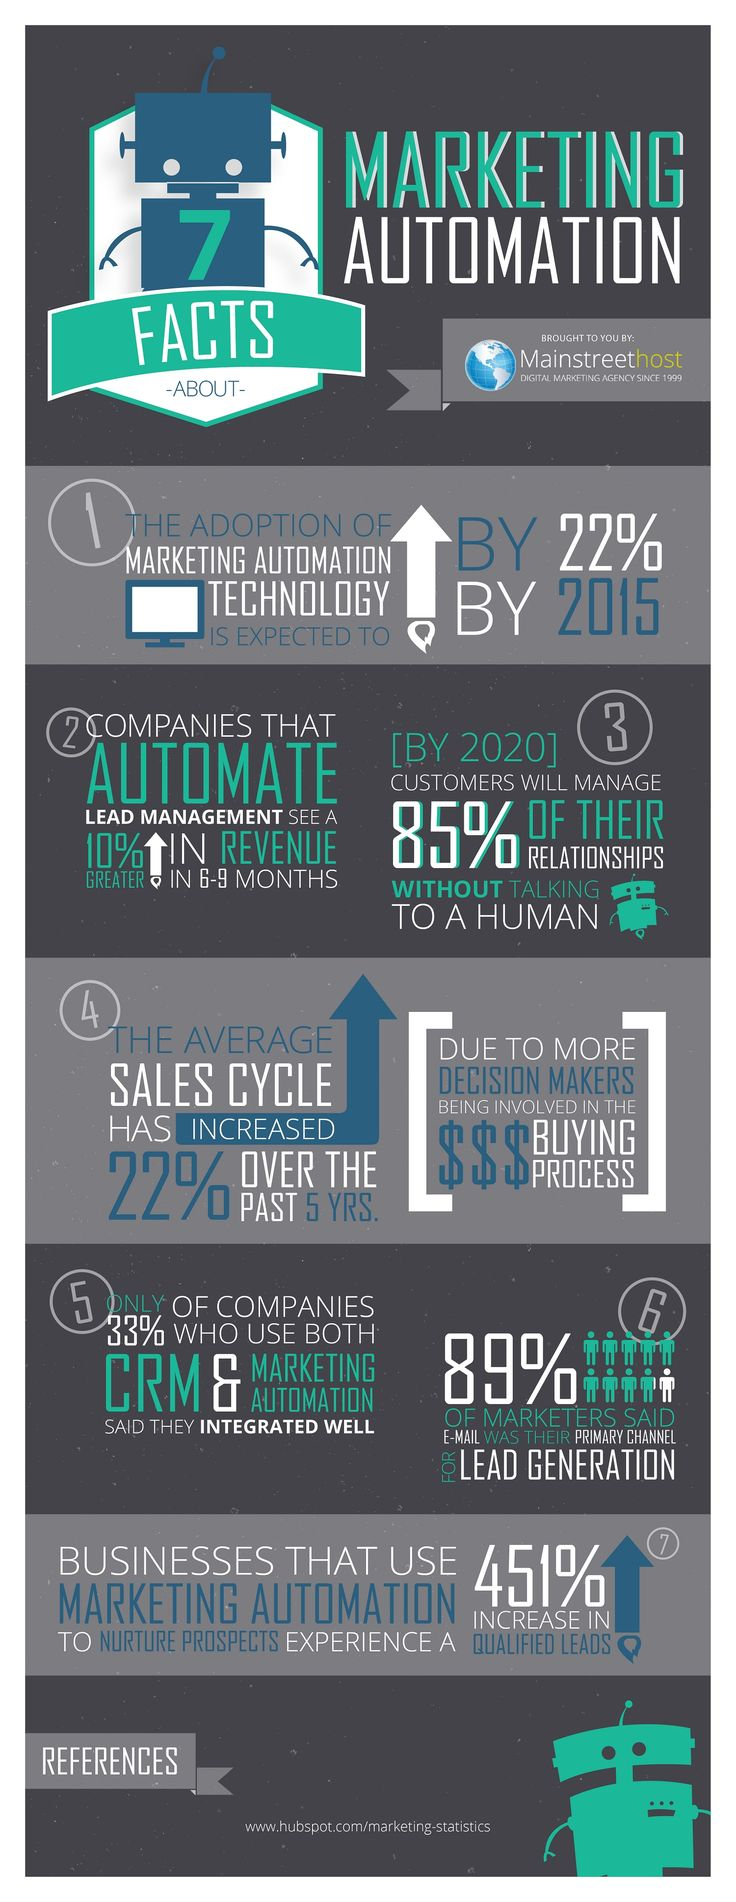 Marketing automation is a type of software that assists marketing departments and businesses with repetitive tasks. It helps generate, nurture, and acquire leads, and drives sales. For example, marketing automation can be used to make your e-mail marketing much more efficient. Here are seven intriguing (and possibly surprising) facts that illustrate the success of adopting marketing automation technology to your business.